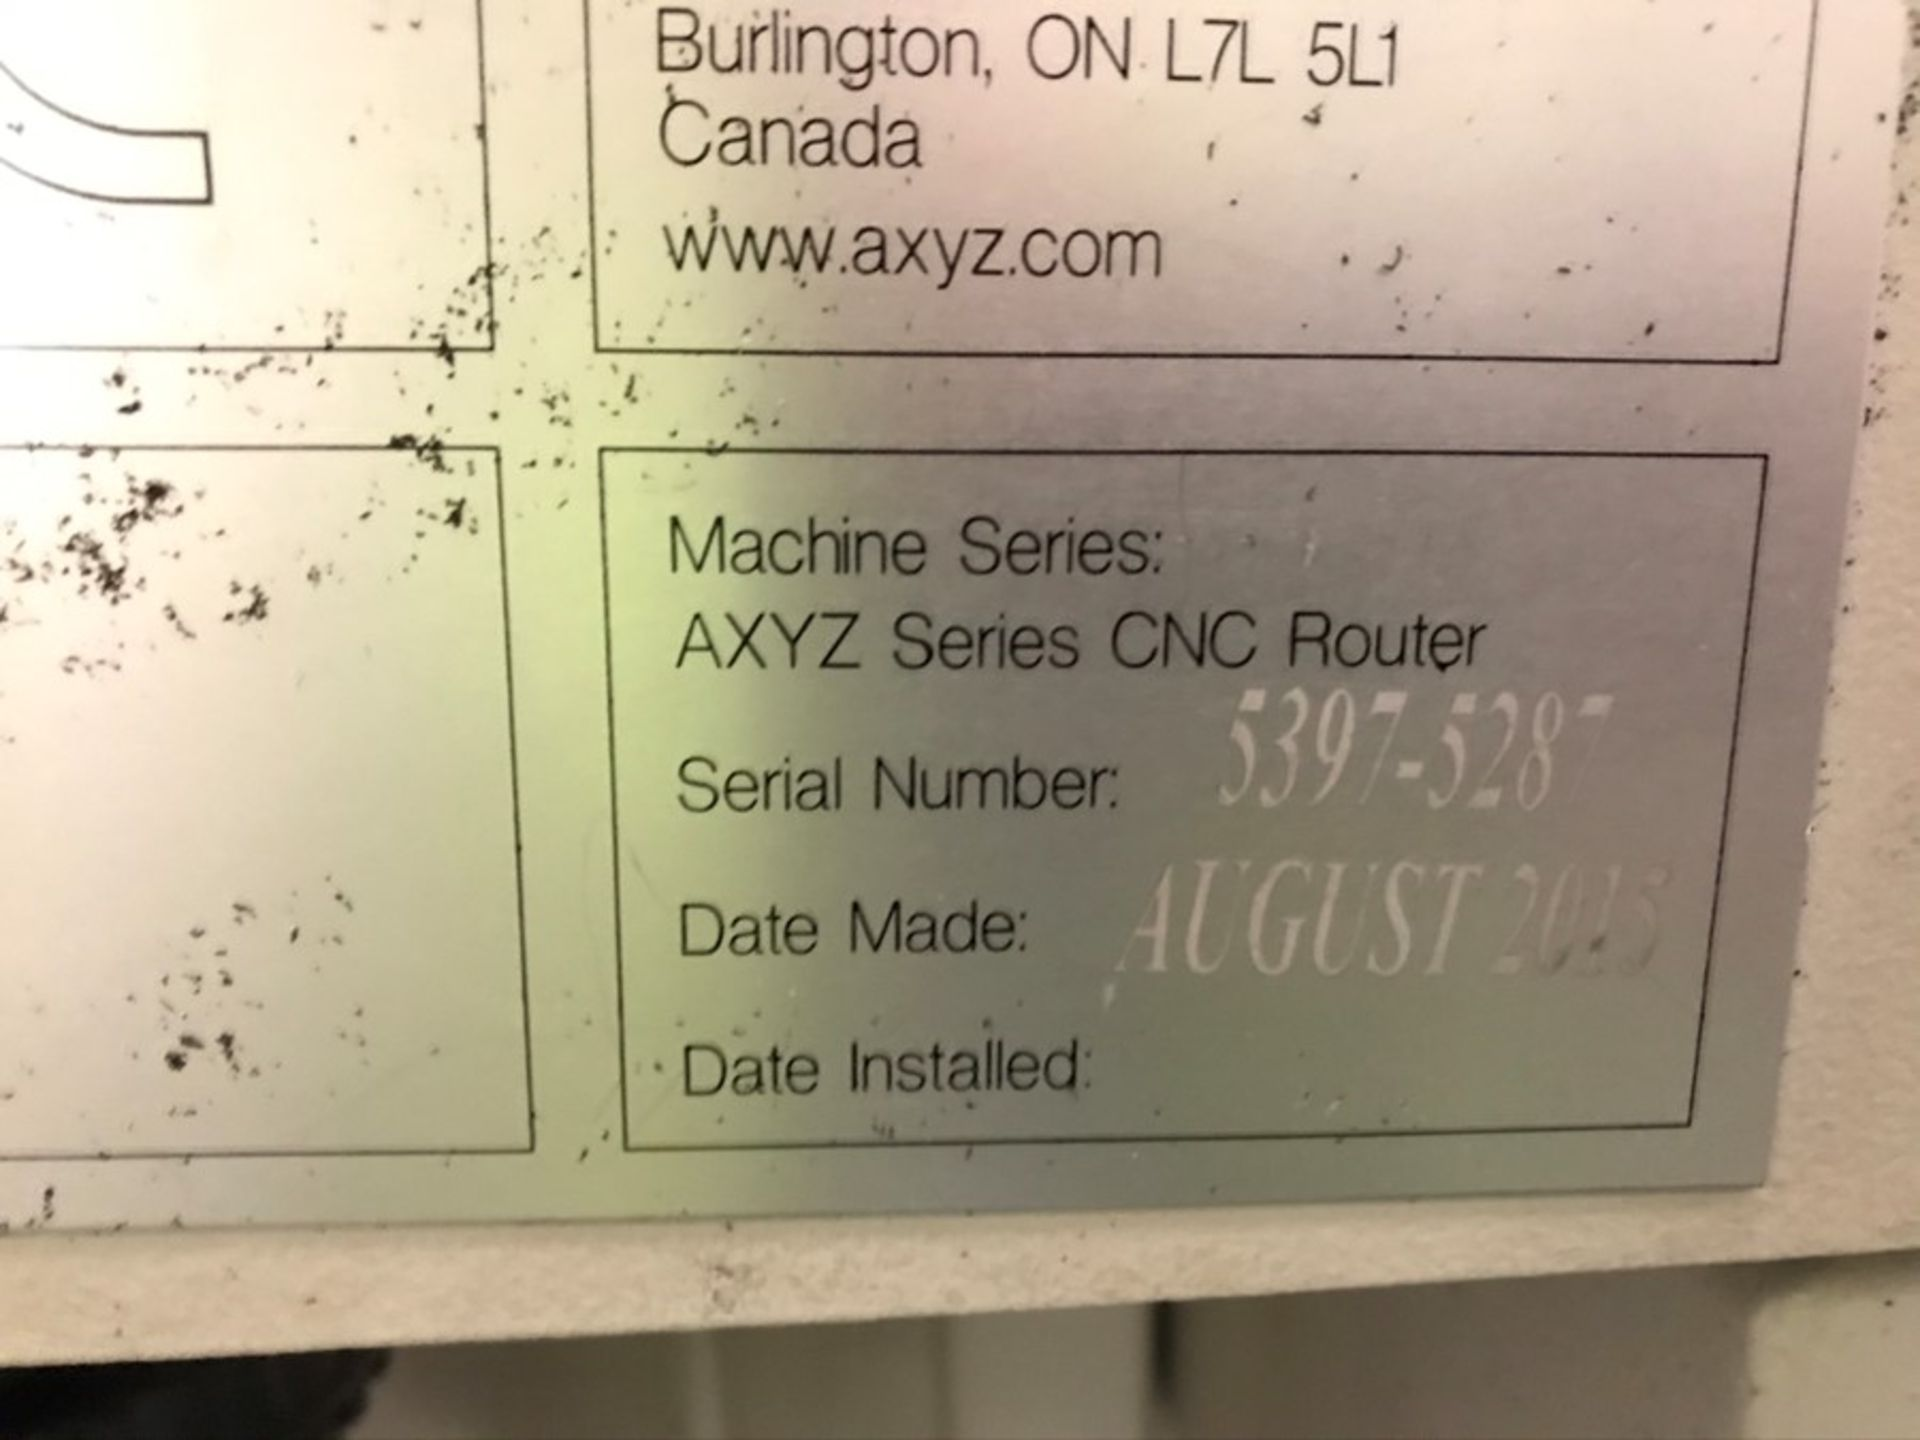 AXYZ 6010 ATC 7G CNC router (2015) - Image 3 of 20